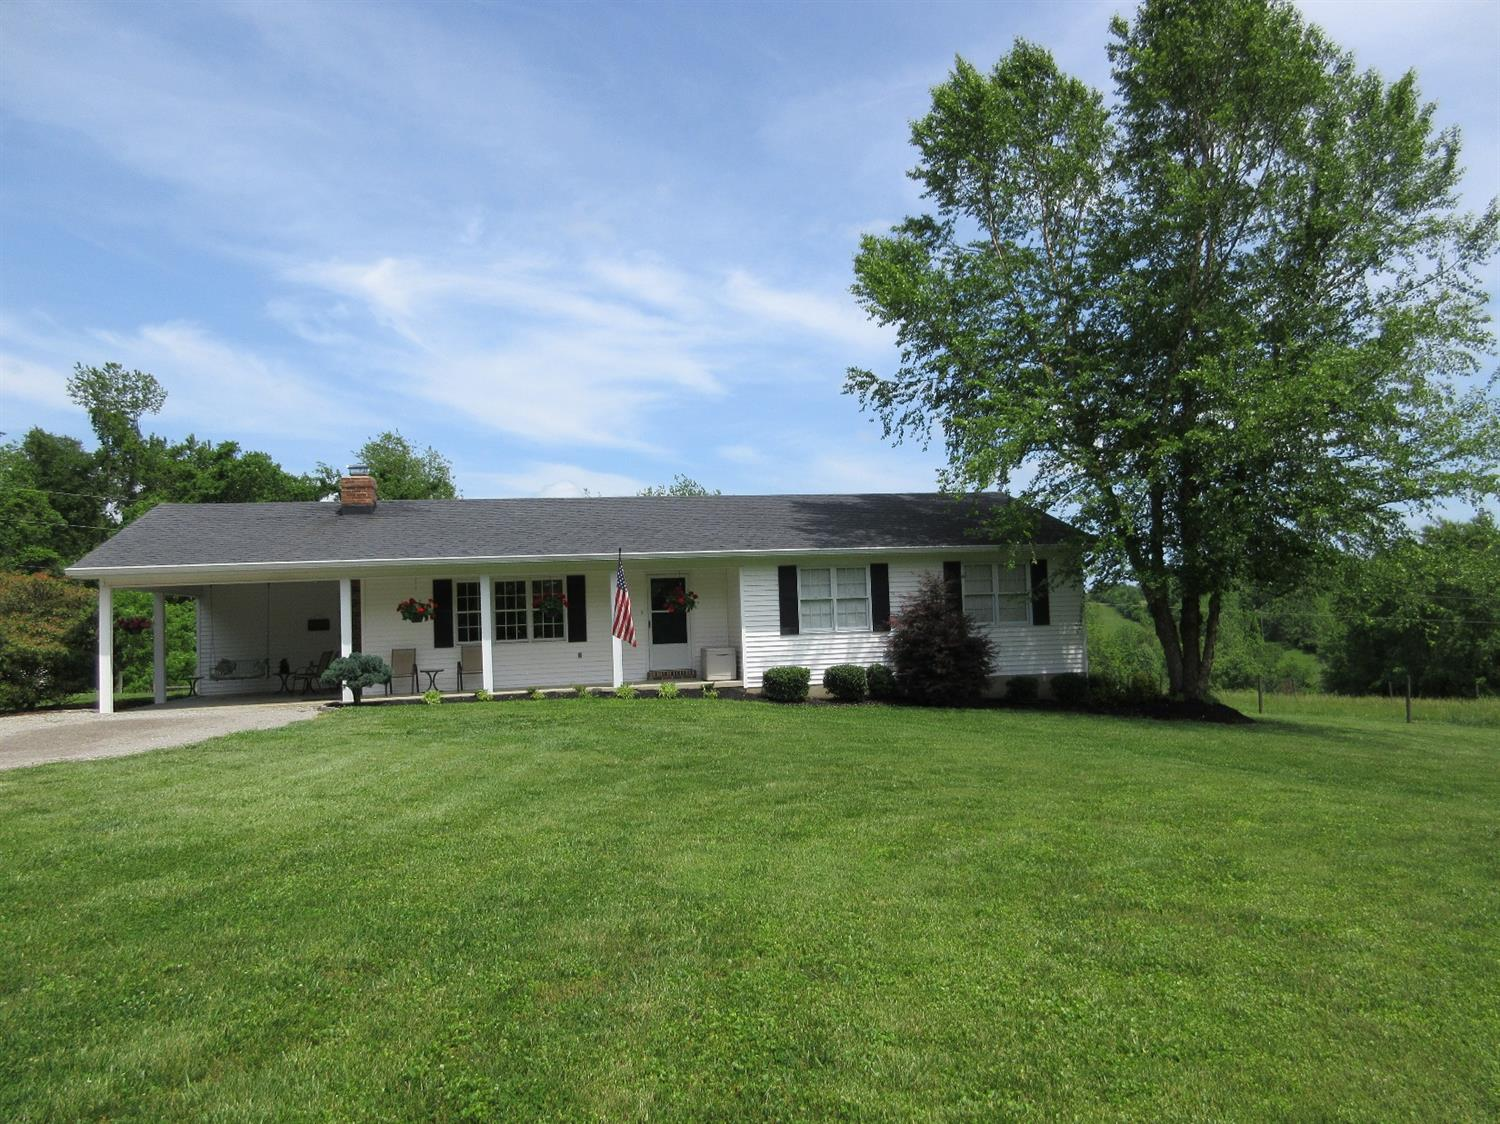 Home For Sale at 703 Kiddville Rd, Winchester, KY 40391